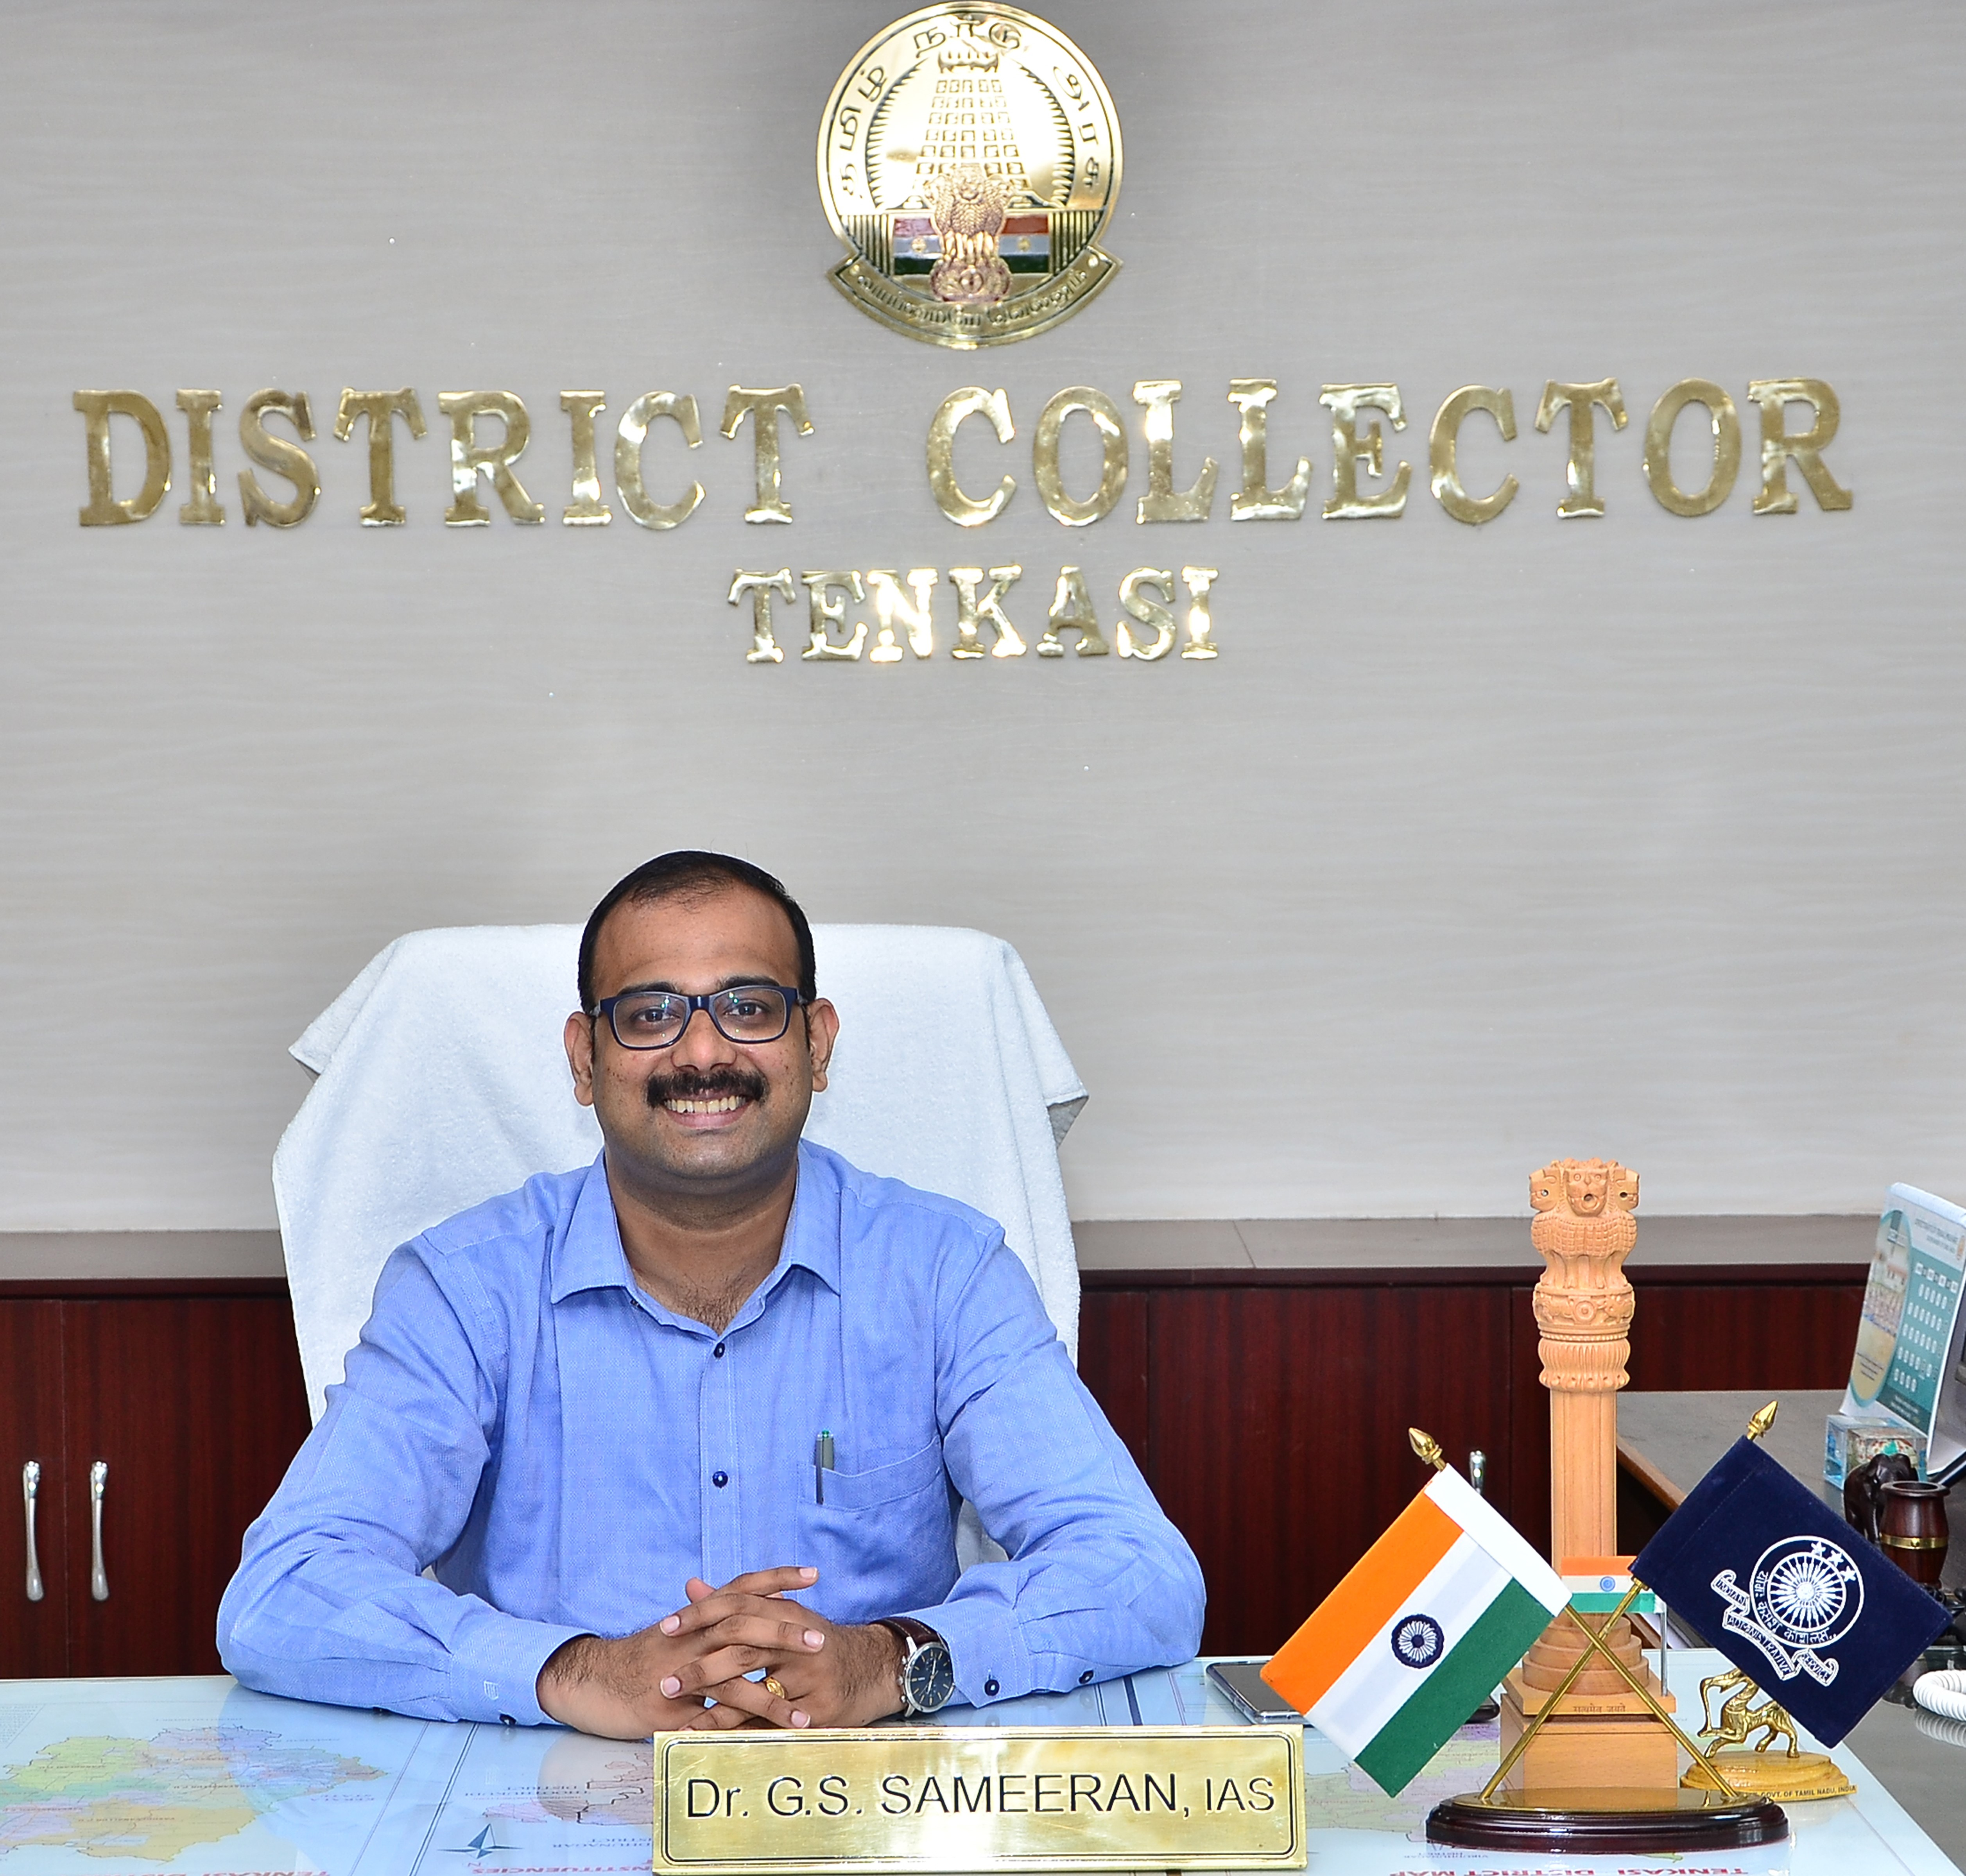 District Collector's image